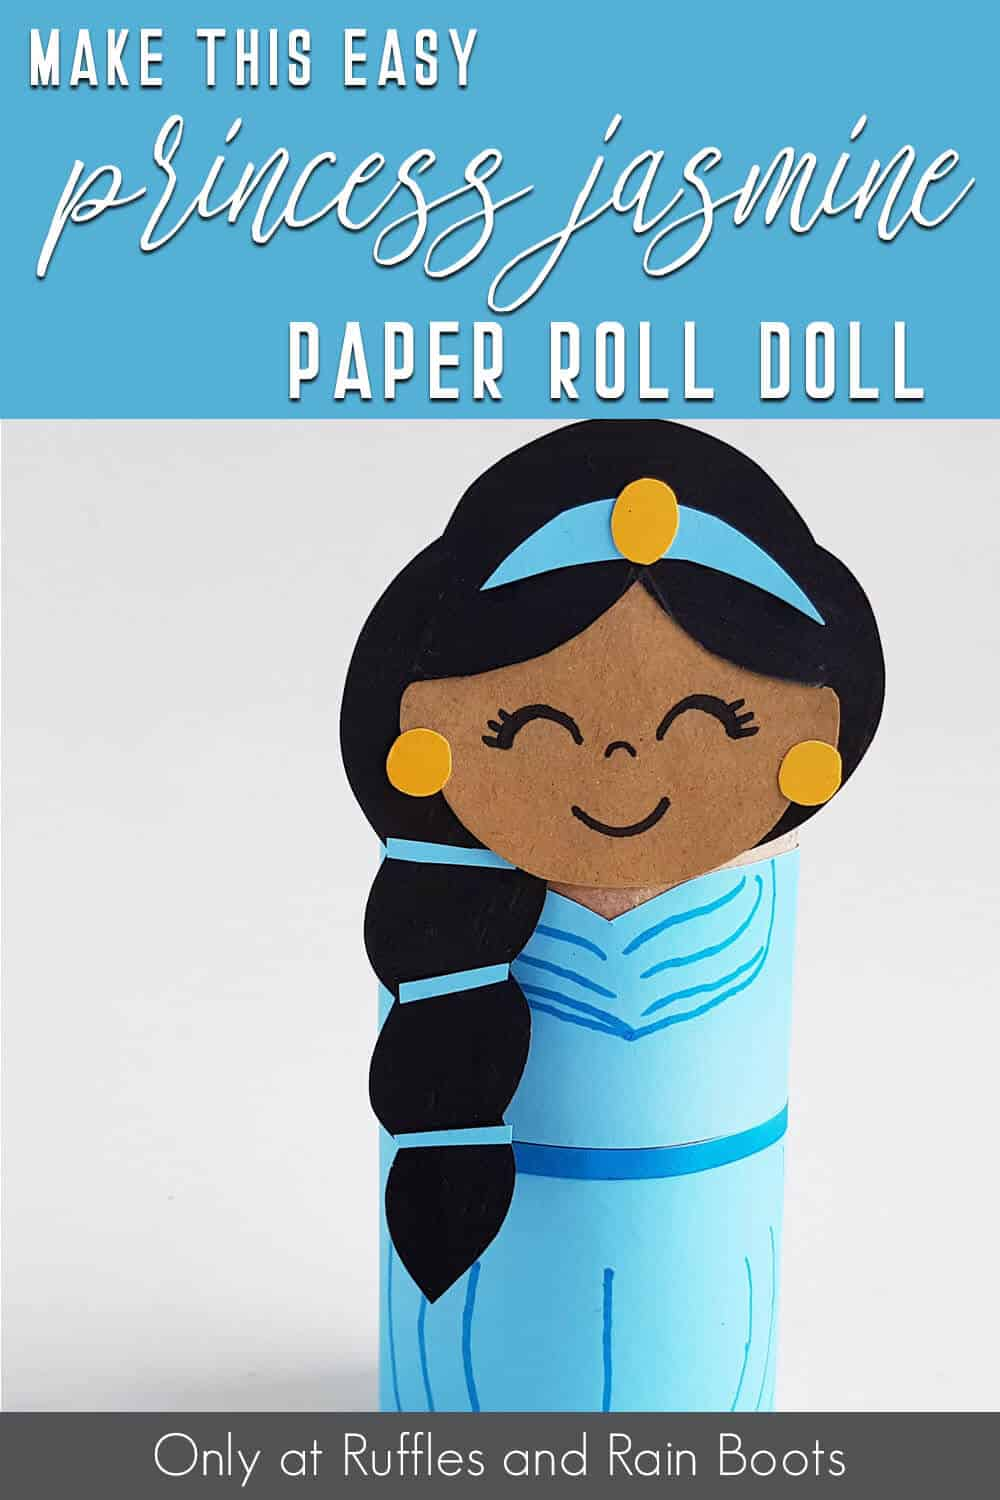 princess jasmine paper kids paper craft with text which reads make this easy princess jasmine paper roll doll